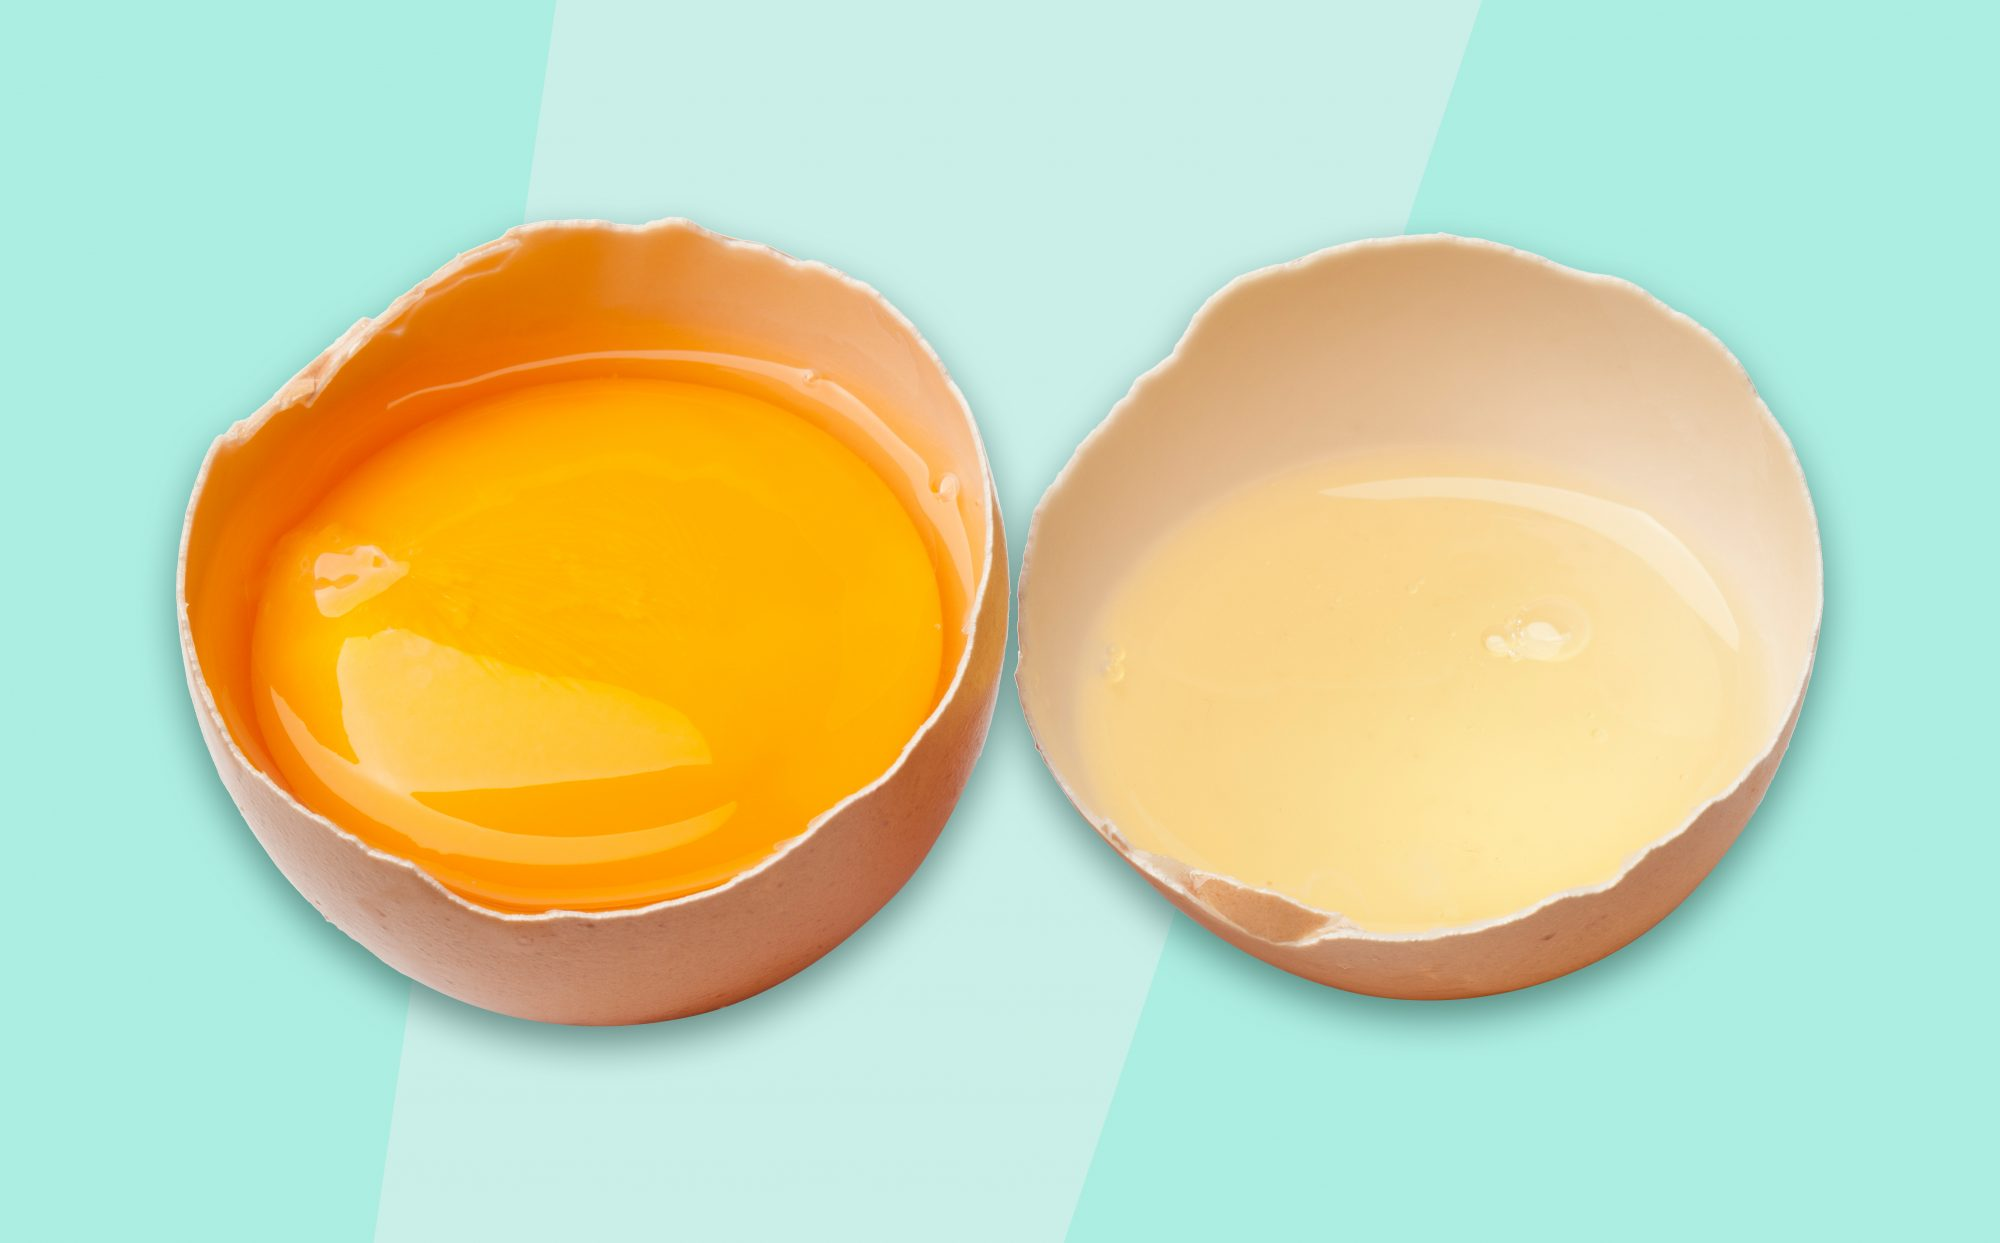 separating-egg-white-yoke